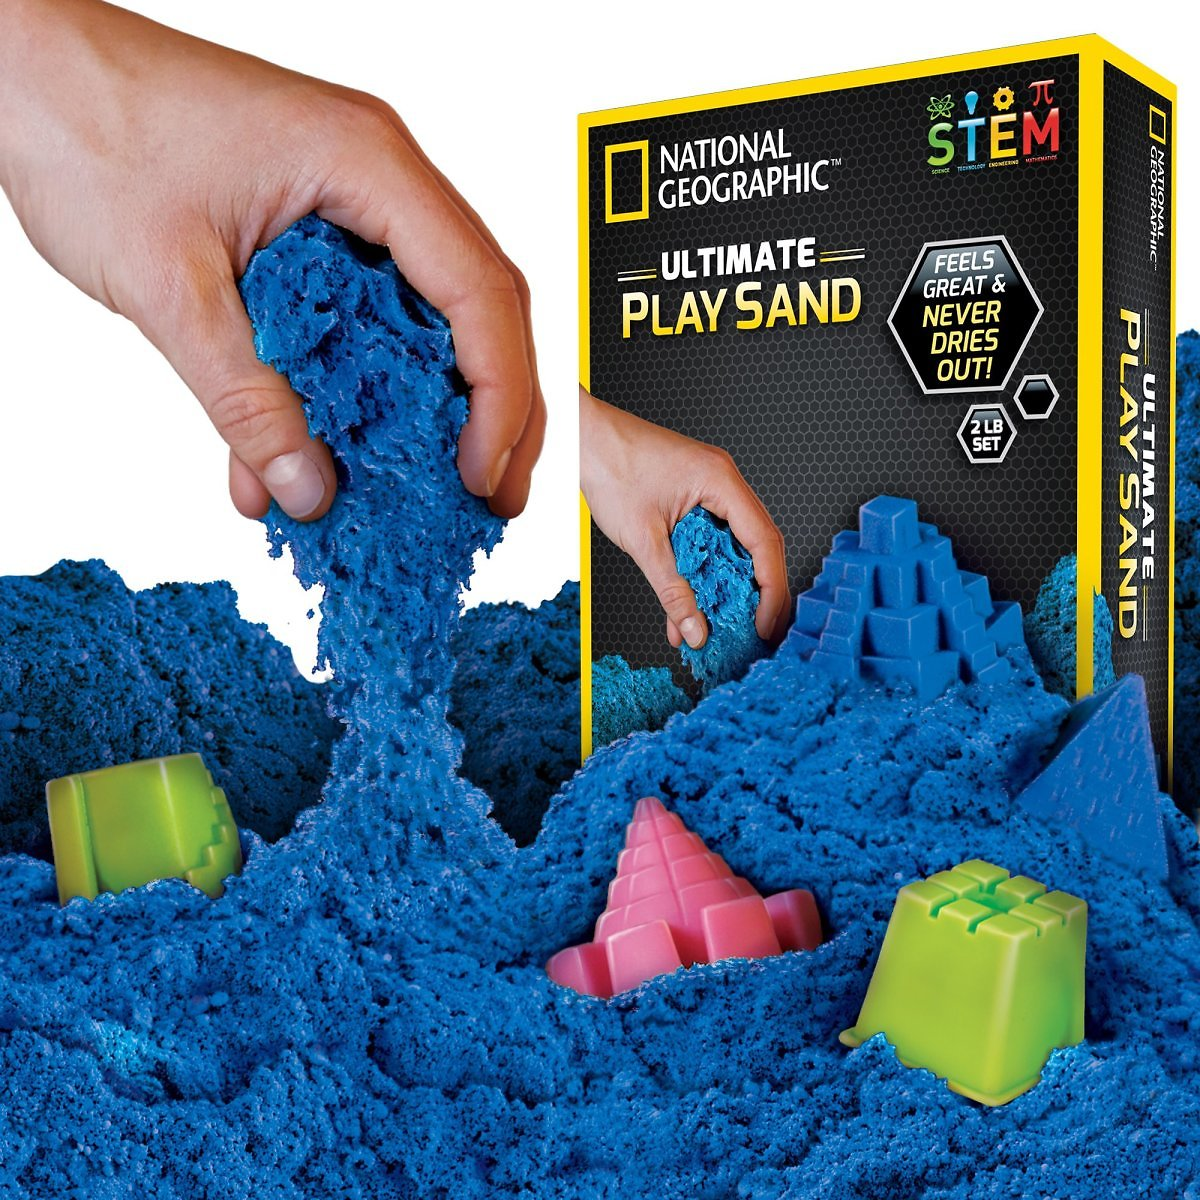 National Geographic Ultimate Play Sand Blue, 2 Lbs with 6 Castle Molds